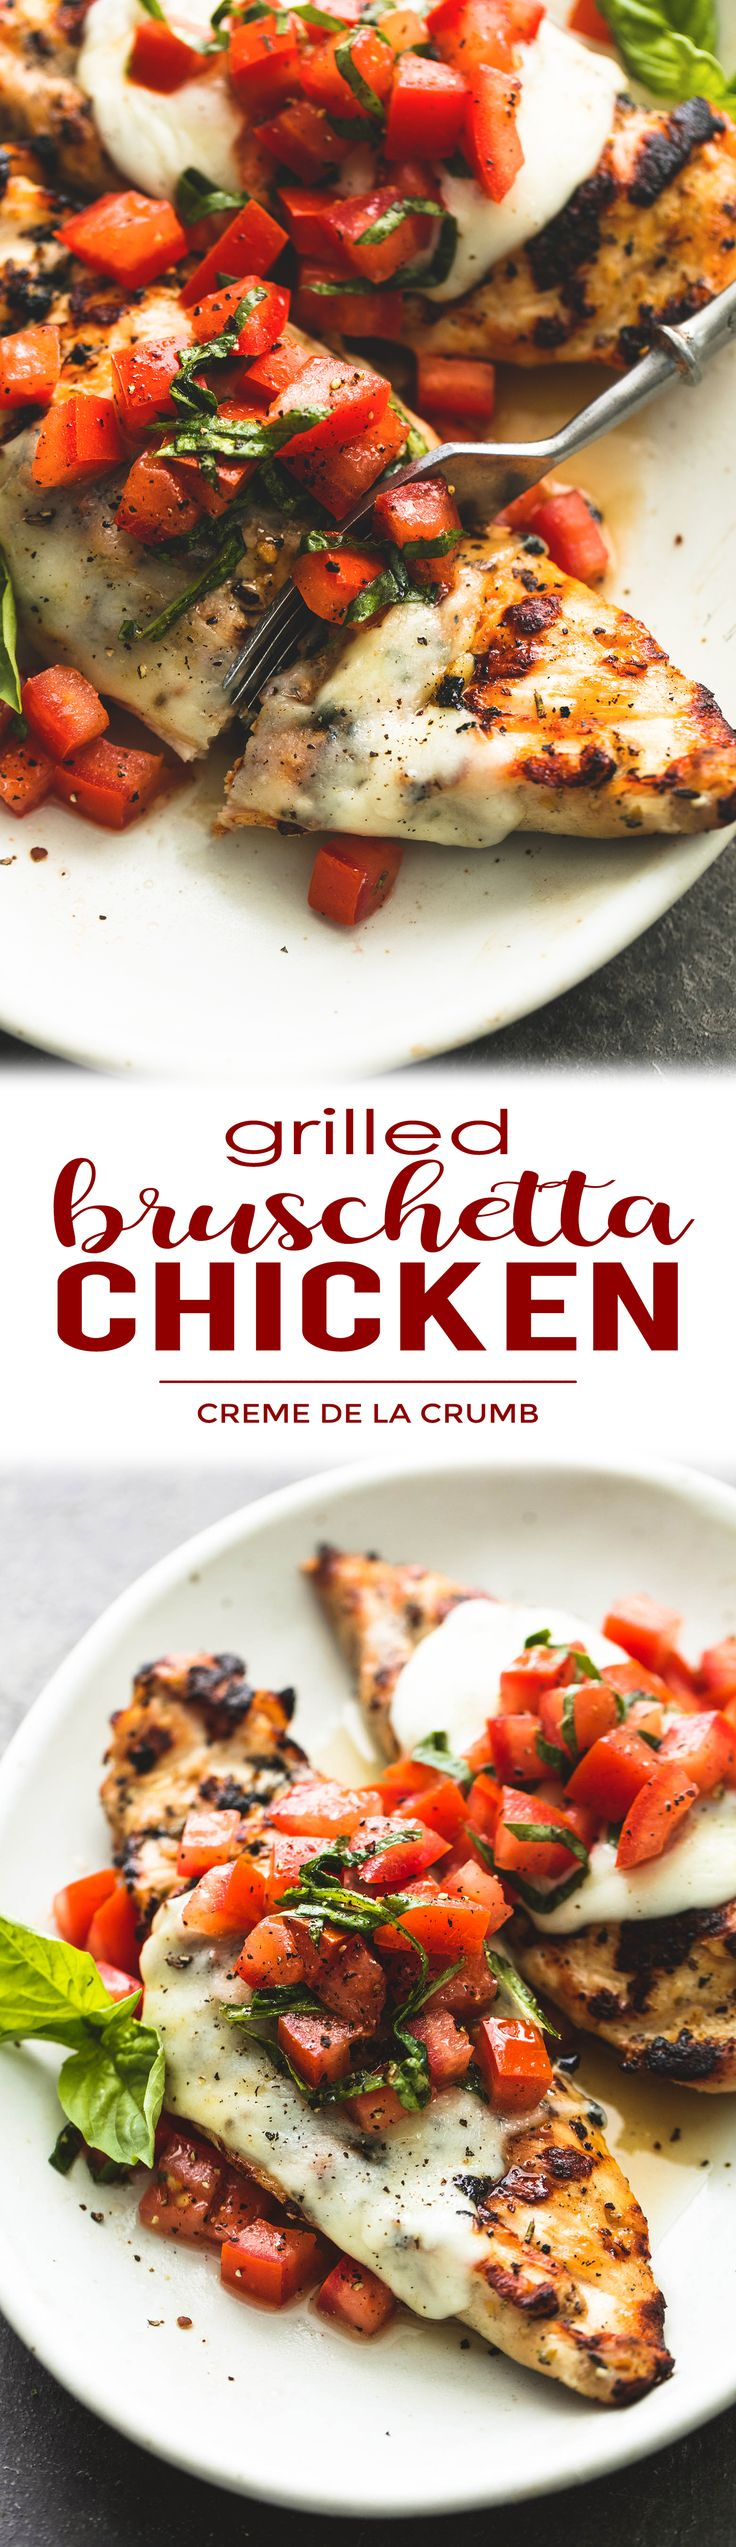 Easy, healthy grilled bruschetta chicken with simple seasonings, melty mozzarella cheese, and a fresh tomato and basil topping